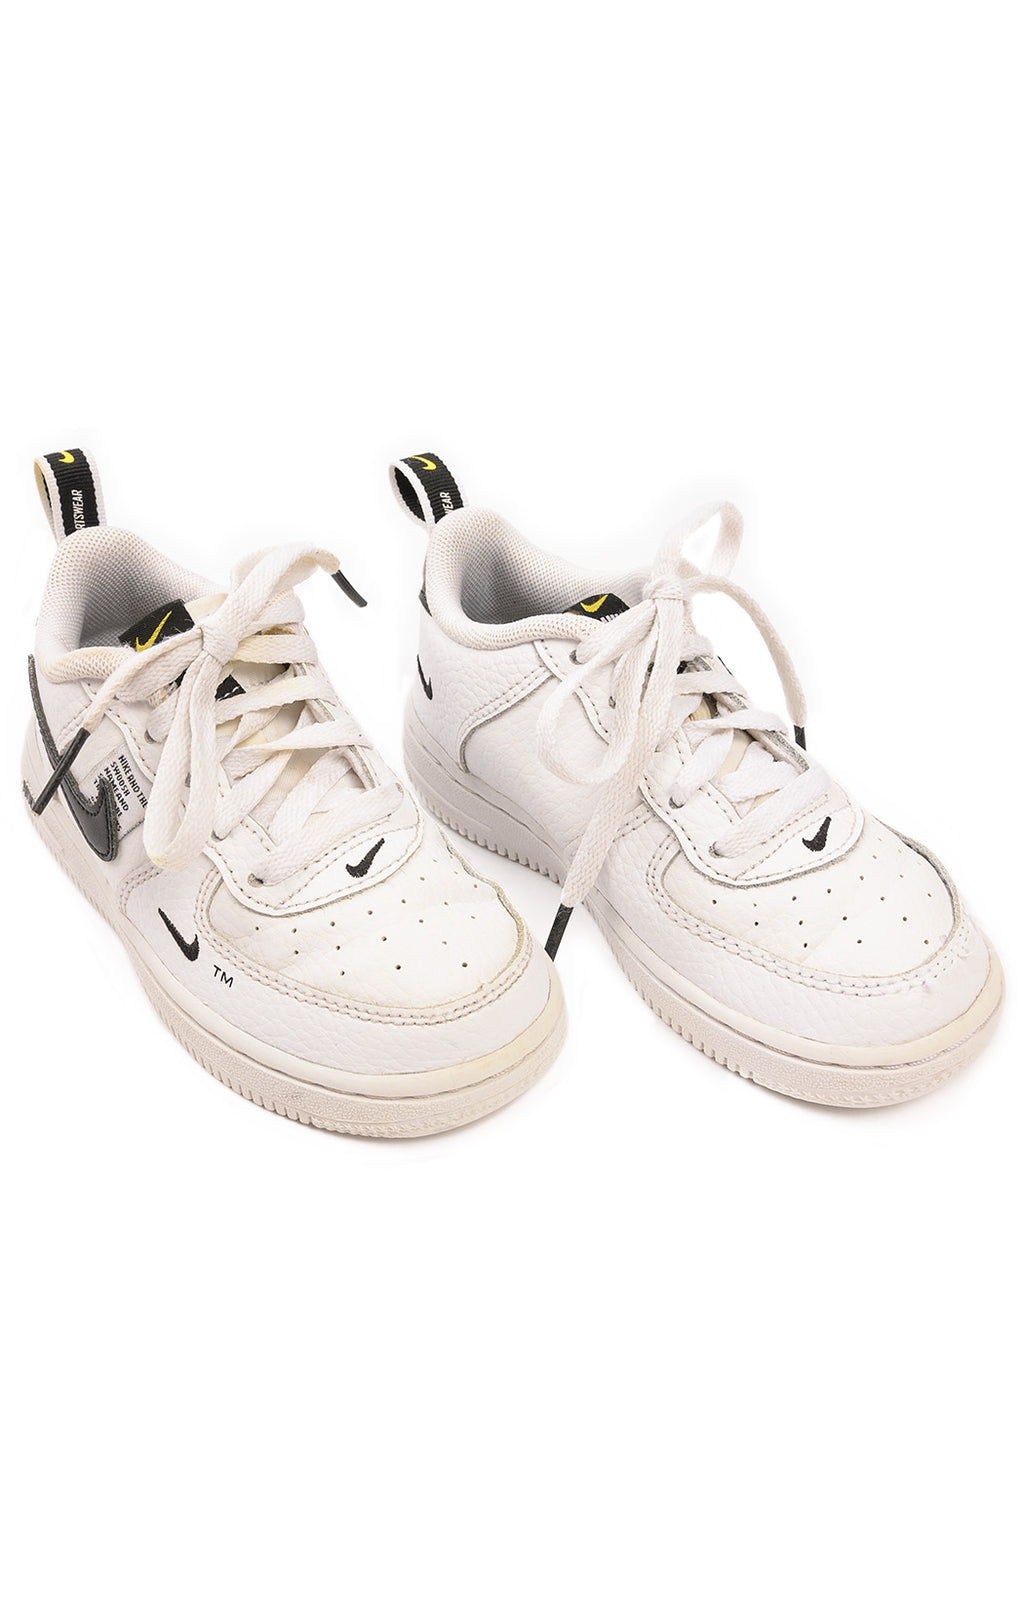 Front view of NIKE Tennis shoes Size: 9 C toddler